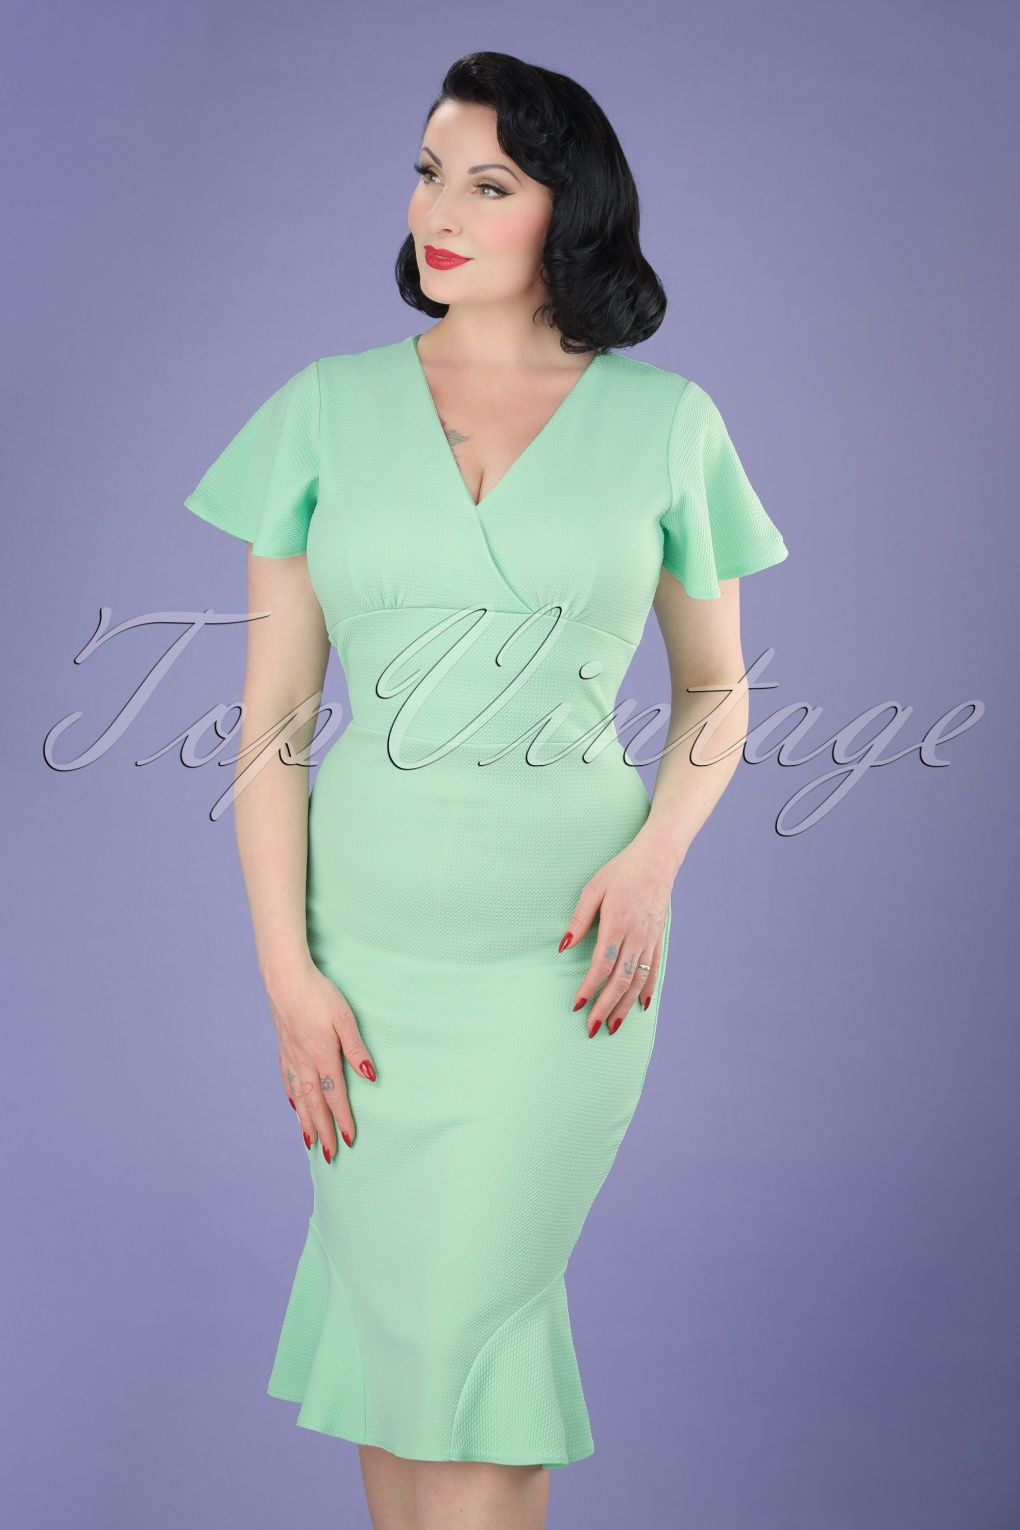 Wiggle Dresses | Pencil Dresses 50s Peggy Waterfall Pencil Dress in Mint £48.25 AT vintagedancer.com